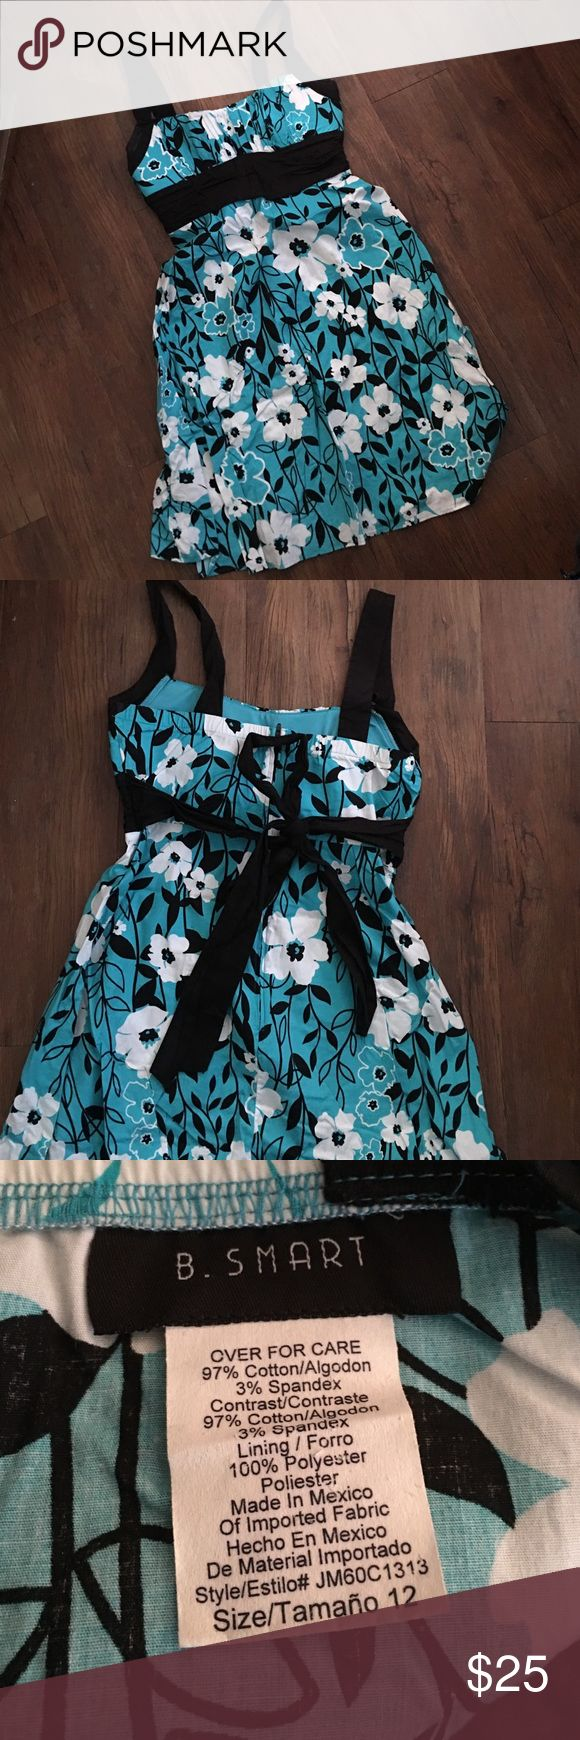 Gorgeous blue dress Gorgeous blue dress with white and black details. Zips up back and sash ties. Only worn once to a wedding however there is a couple loose threads on right side by strap as shown in picture. Make me an offer b.smart Dresses Asymmetrical